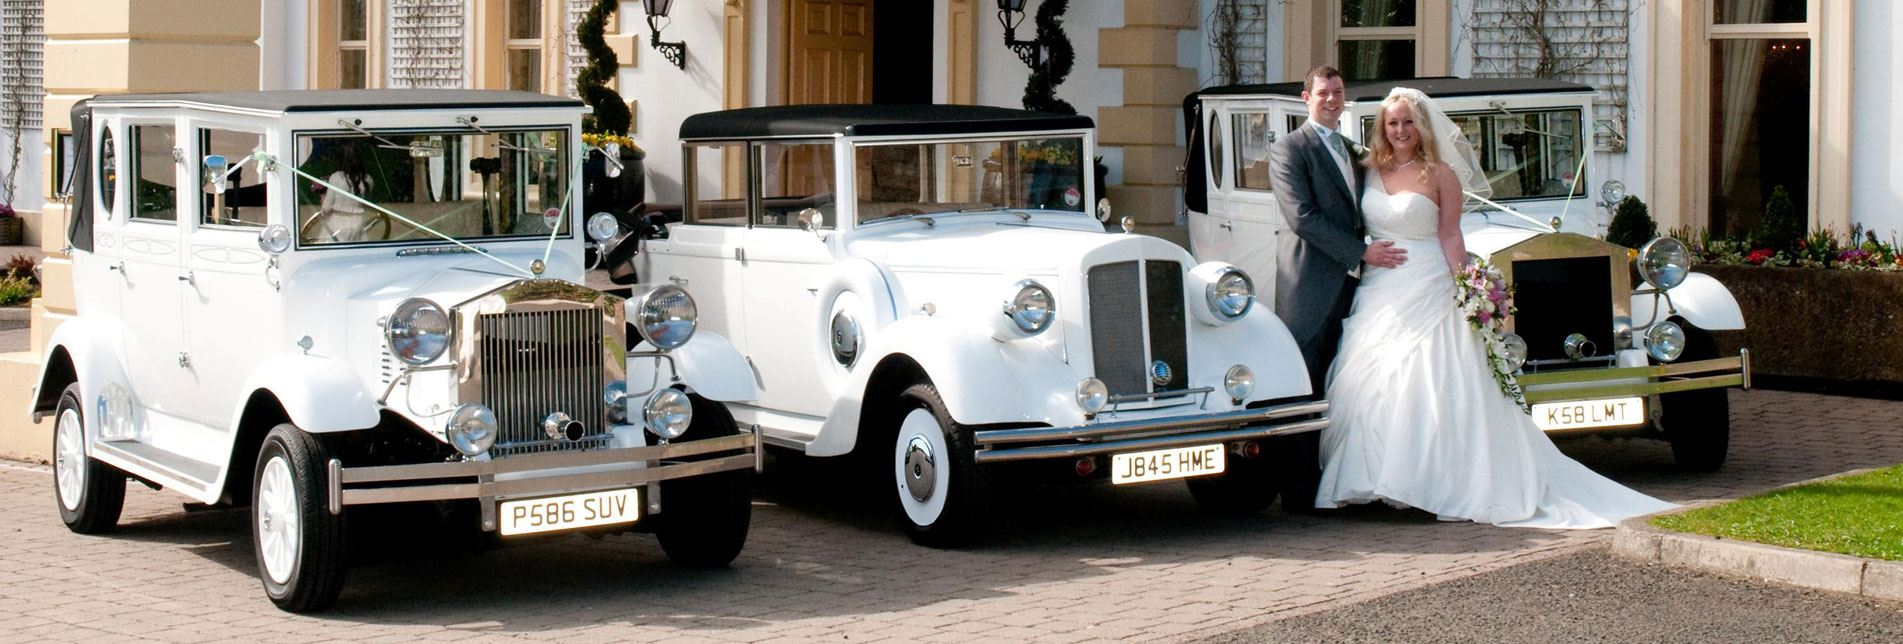 Northern Ireland S Largest Selection Of Award Winning Wedding Cars